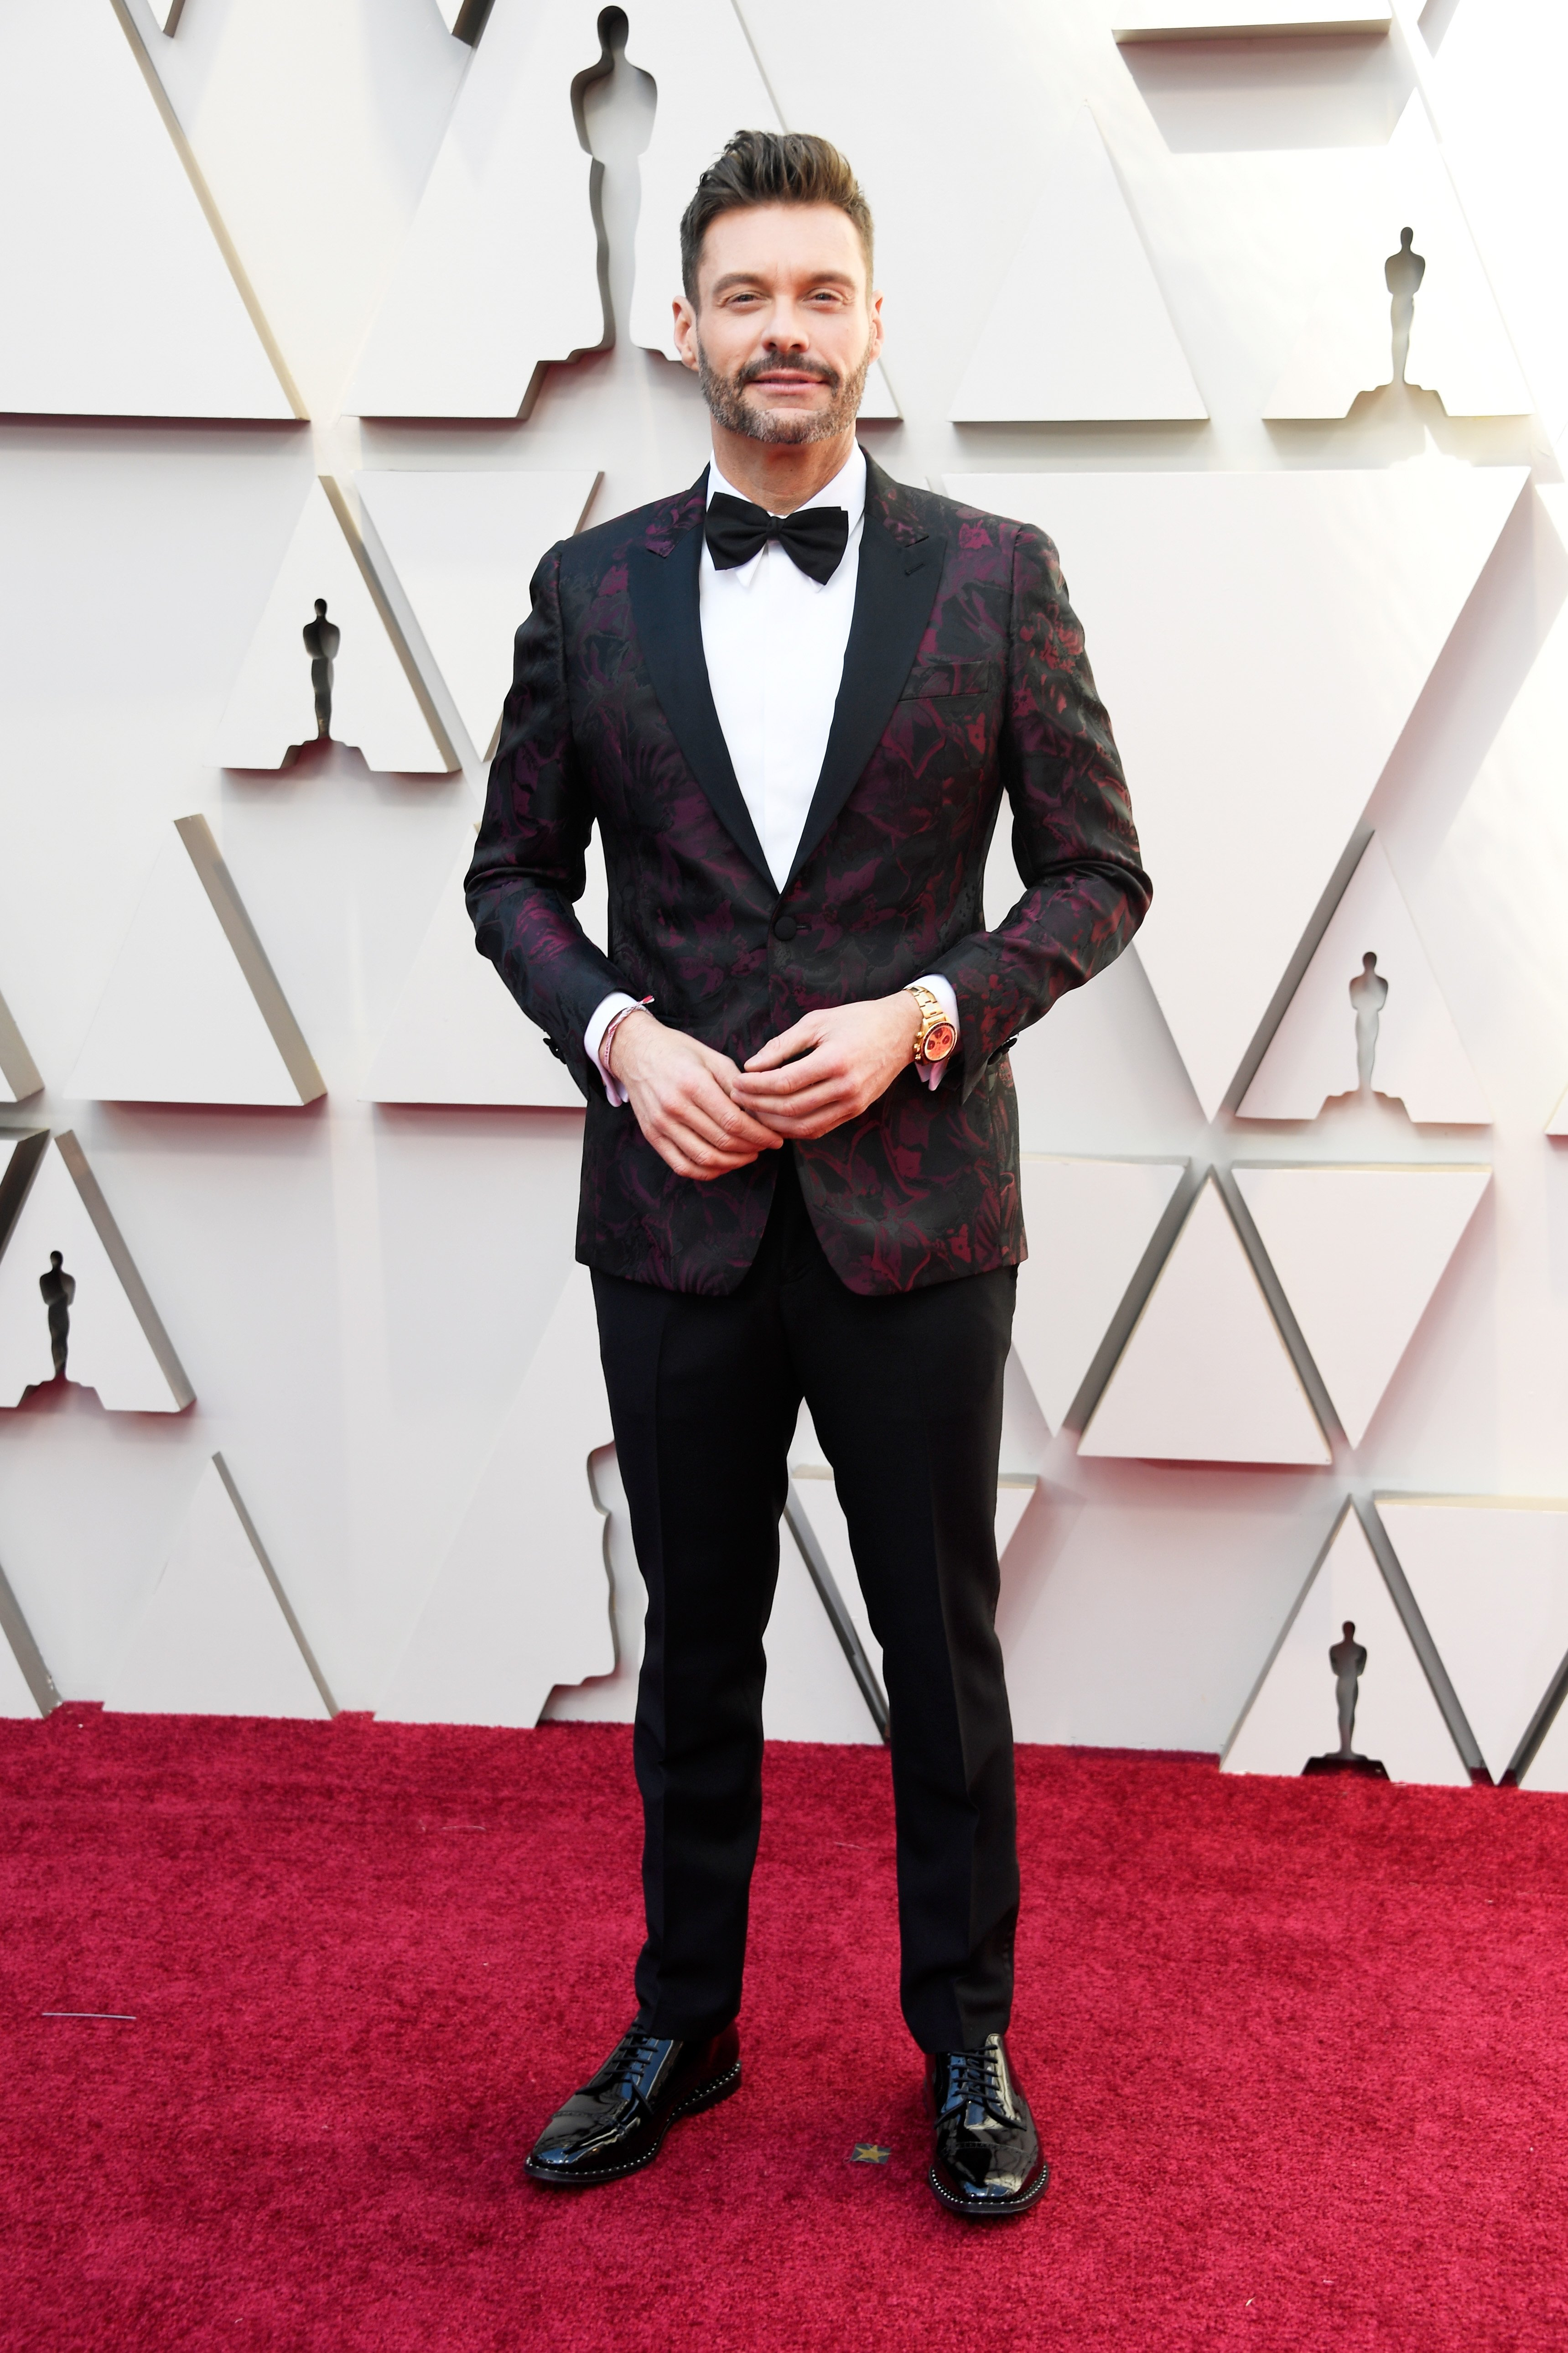 Ryan Seacrest at the 91st Annual Academy Awards at Hollywood and Highland on February 24, 2019 | Photo: Getty Images